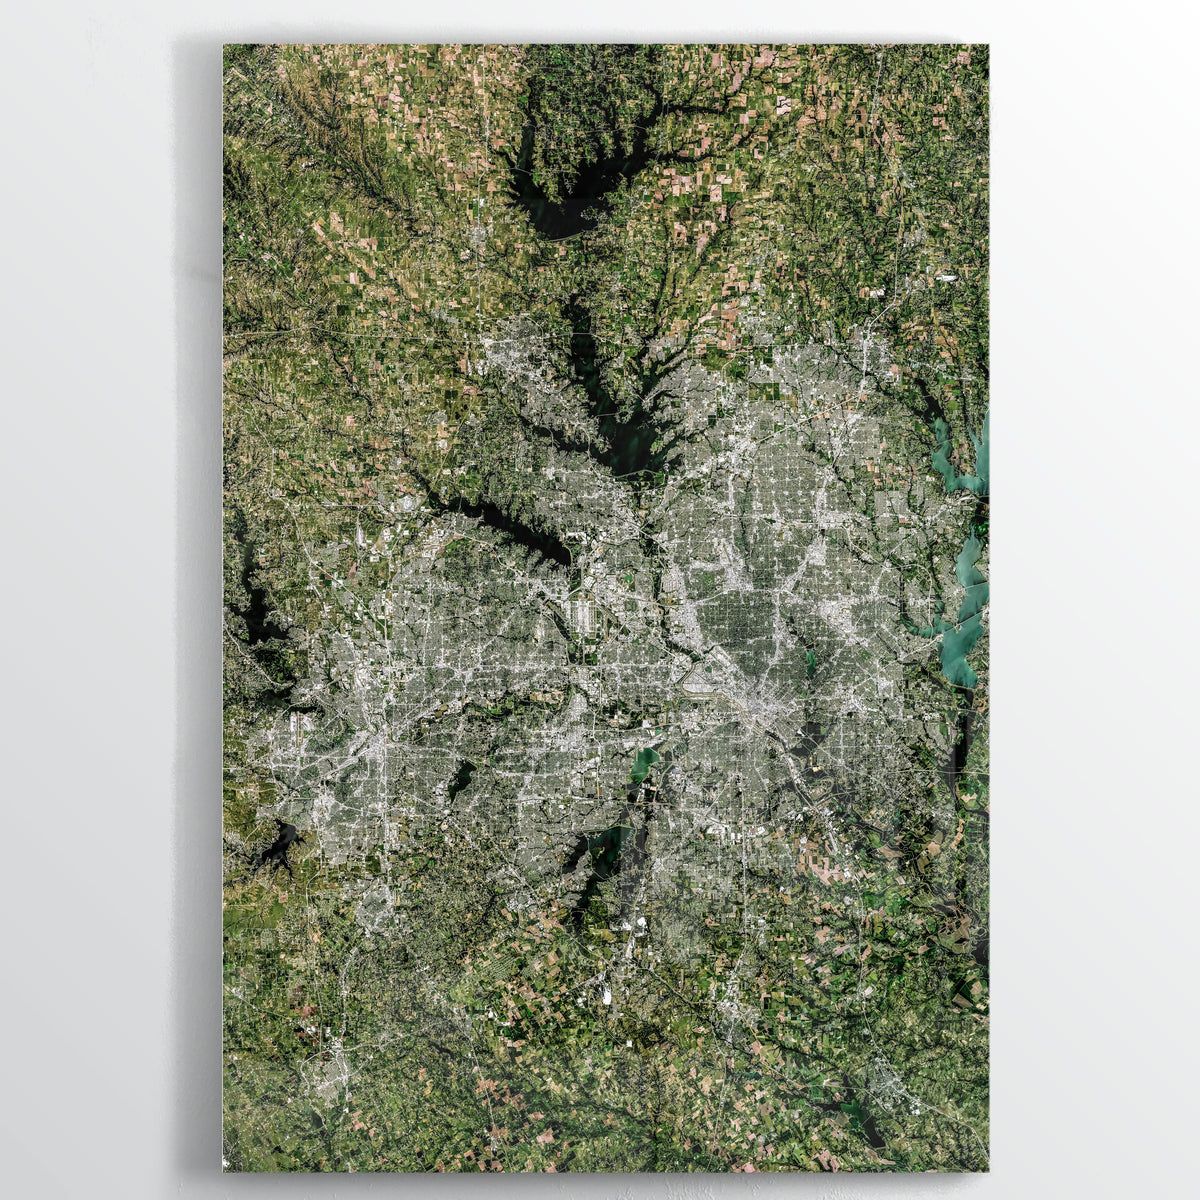 Dallas Earth Photography - Floating Acrylic Art - Point Two Design